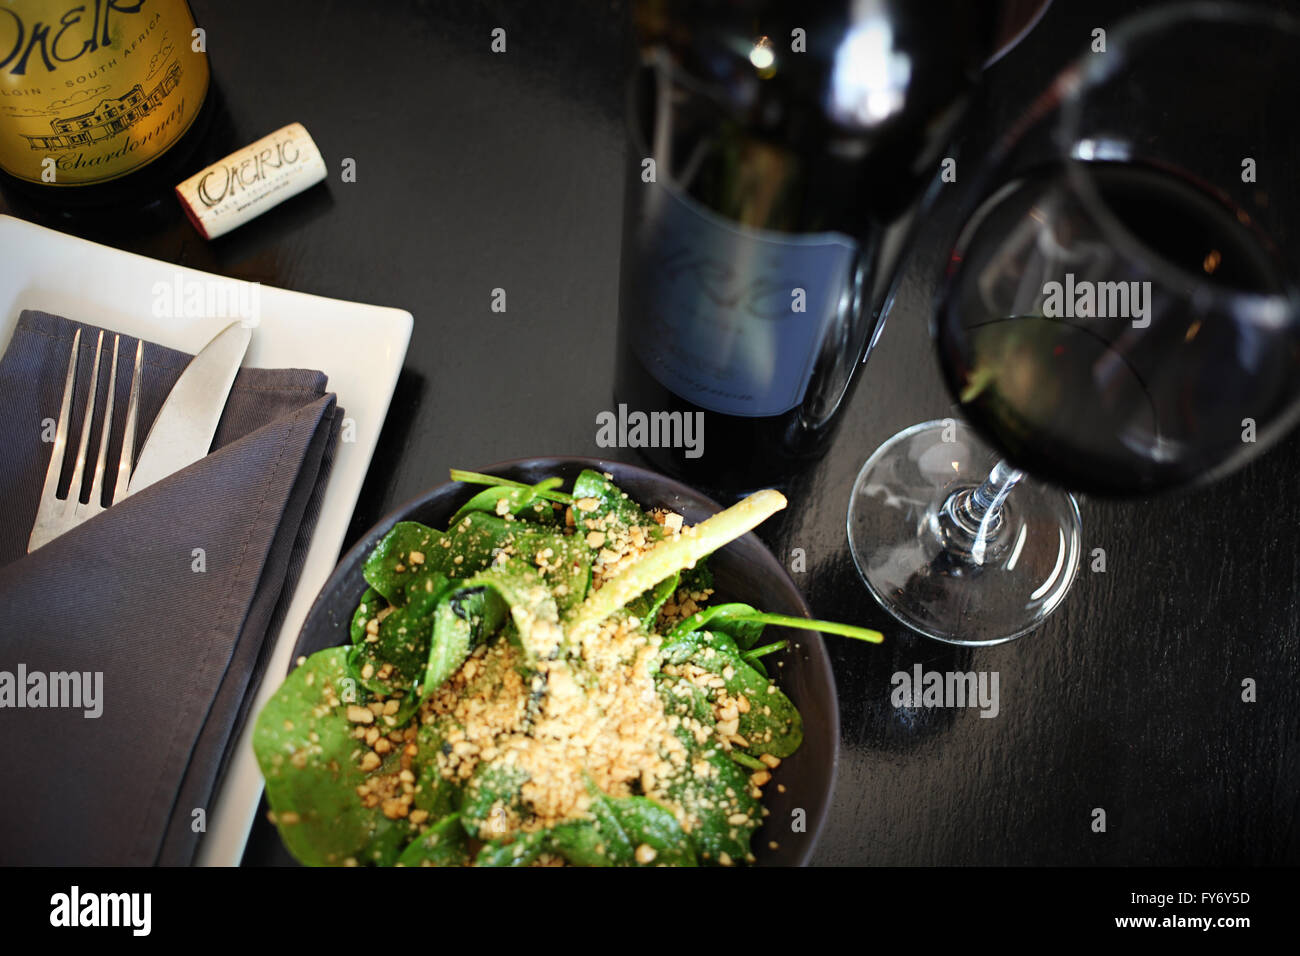 Food and wine pairing - Stock Image